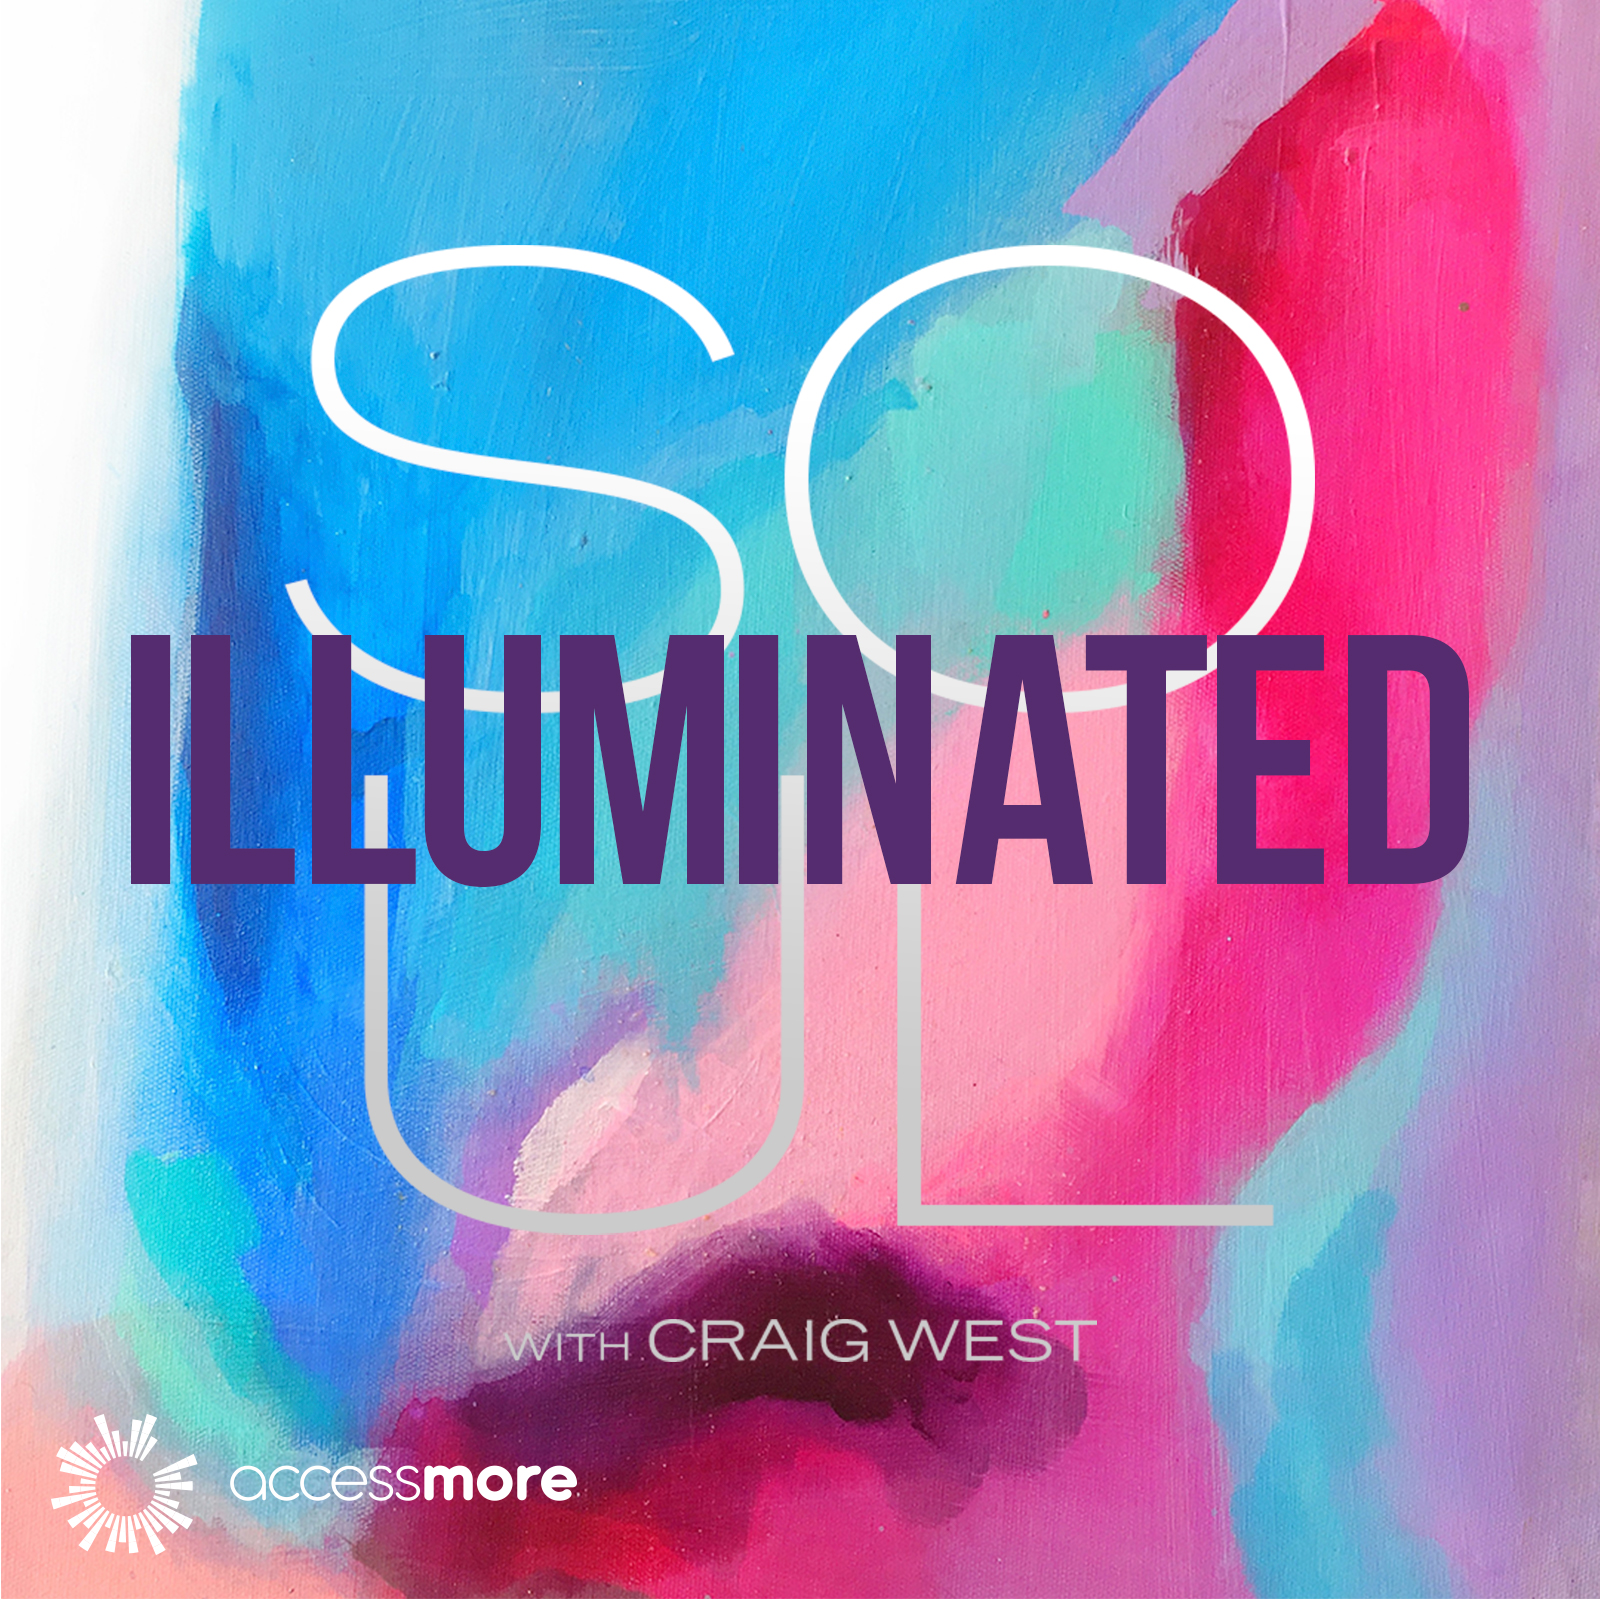 Illuminated Soul with Craig West